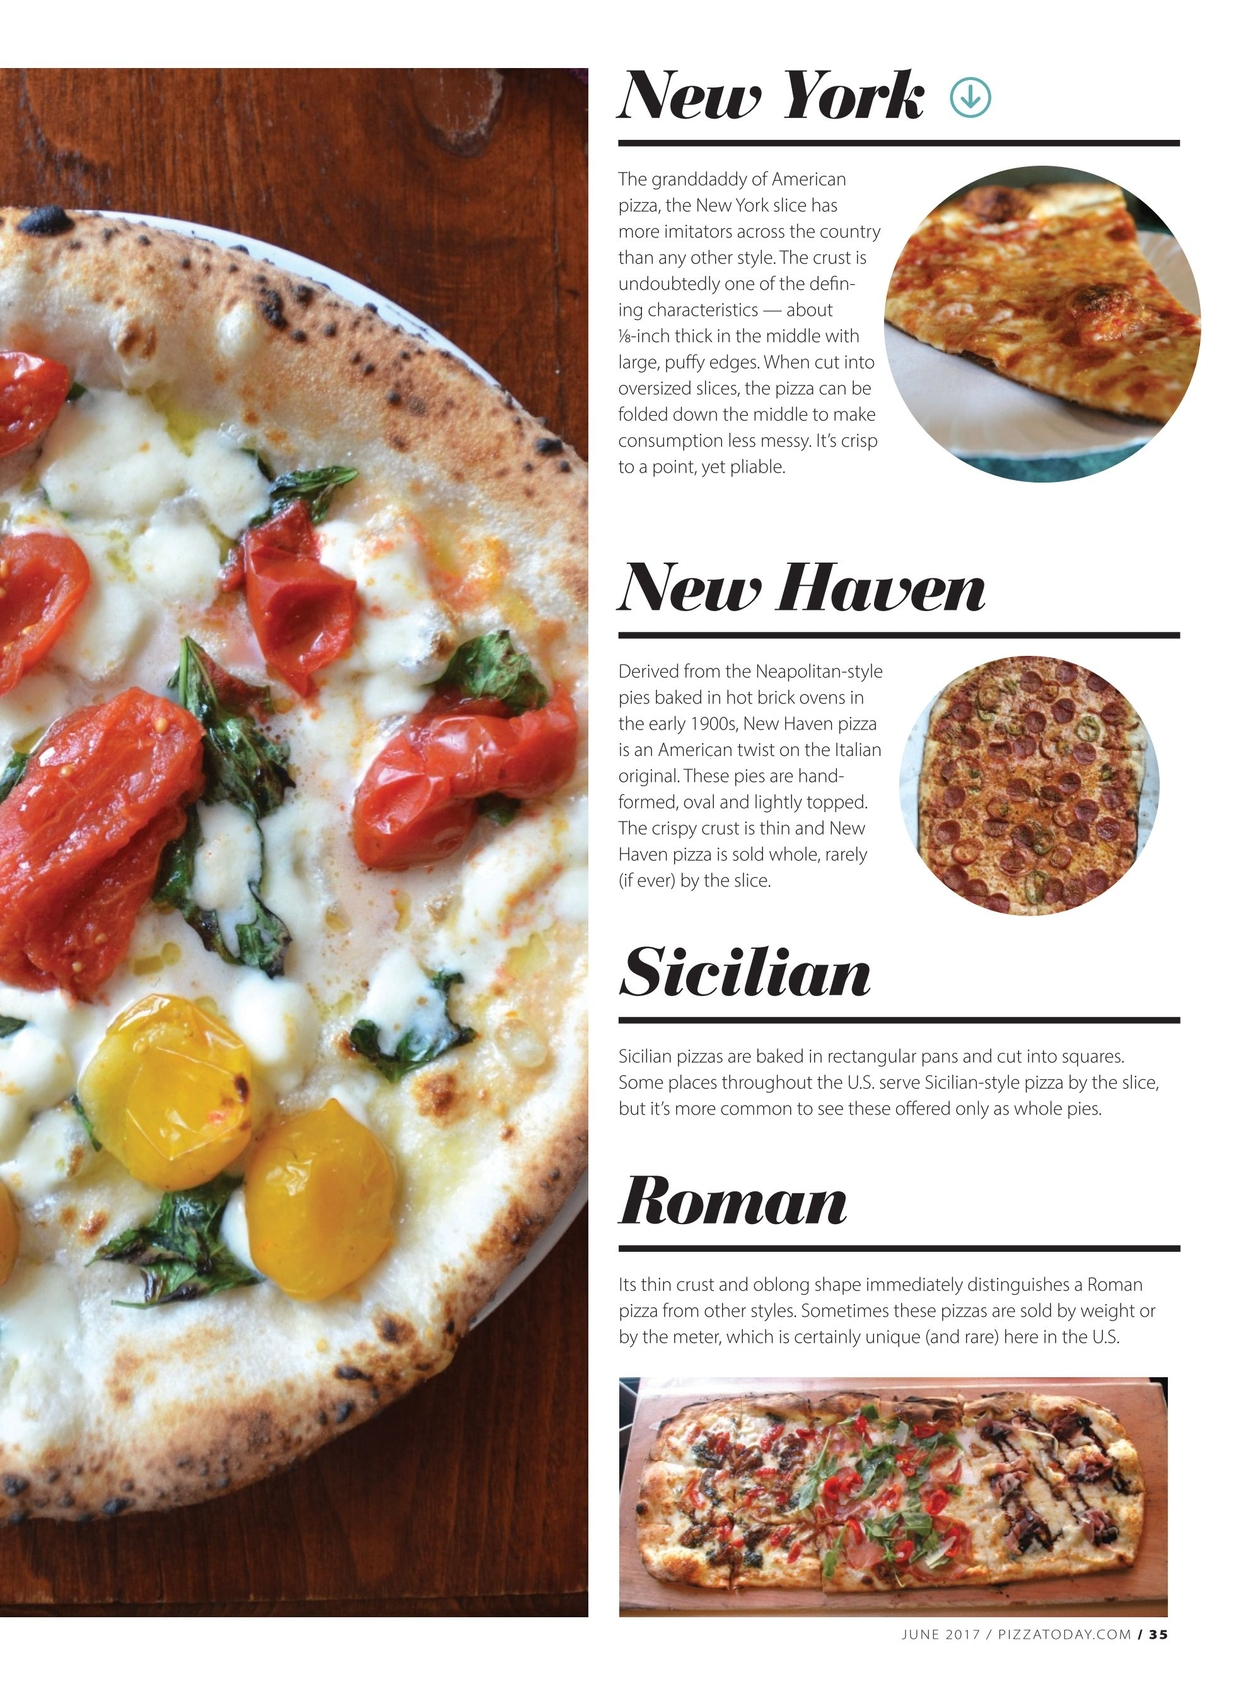 Pizza Today - June 2017 [34 - 35]